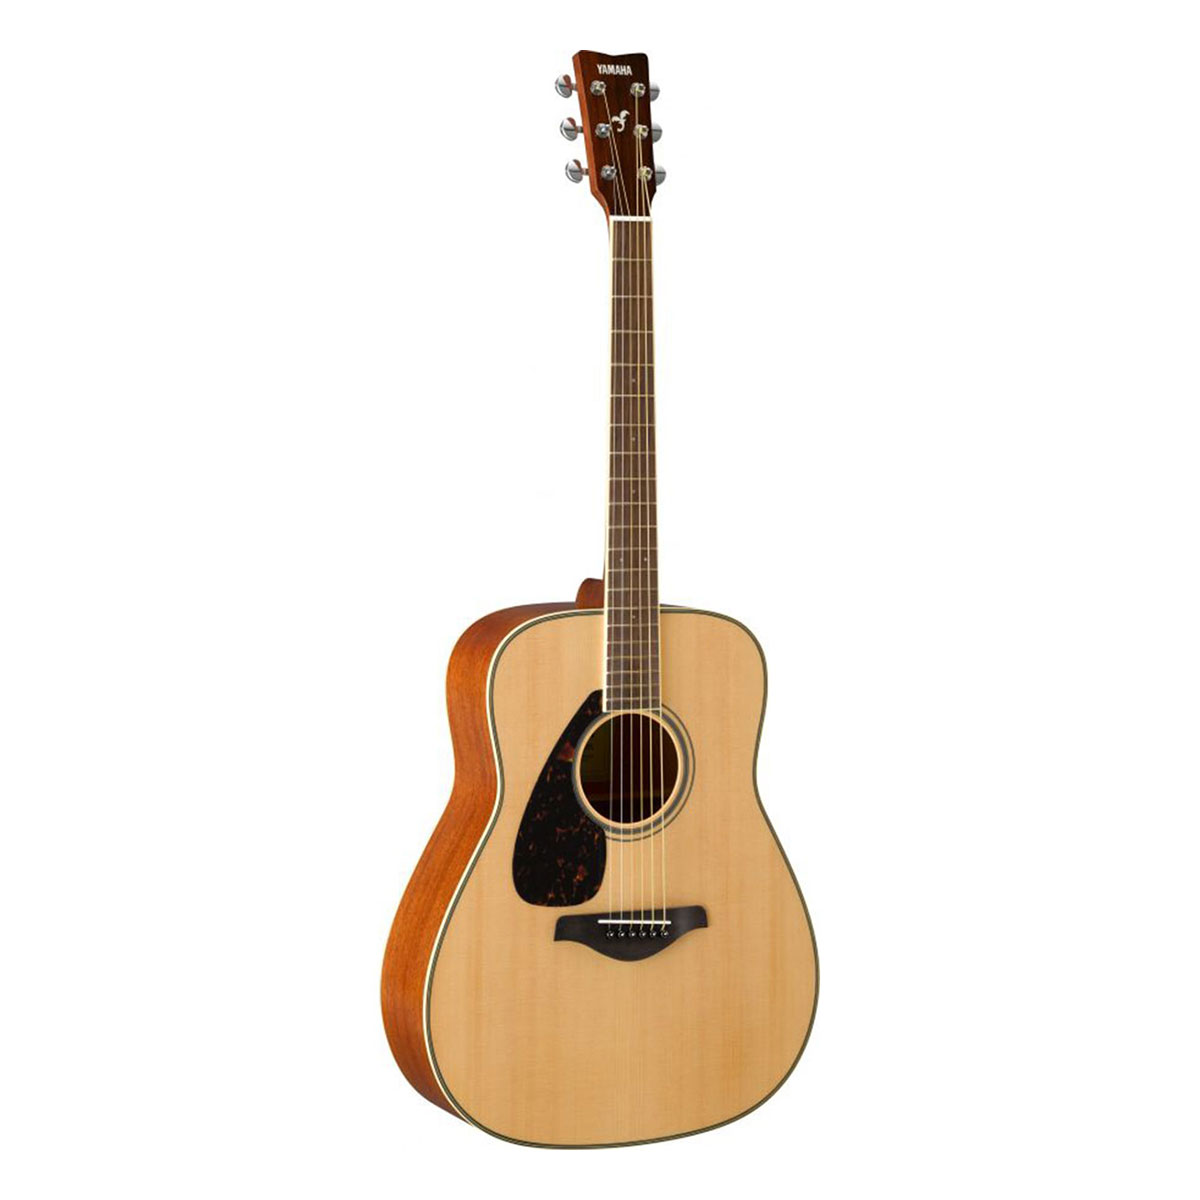 Yamaha - GFG820LNT natural gaucher